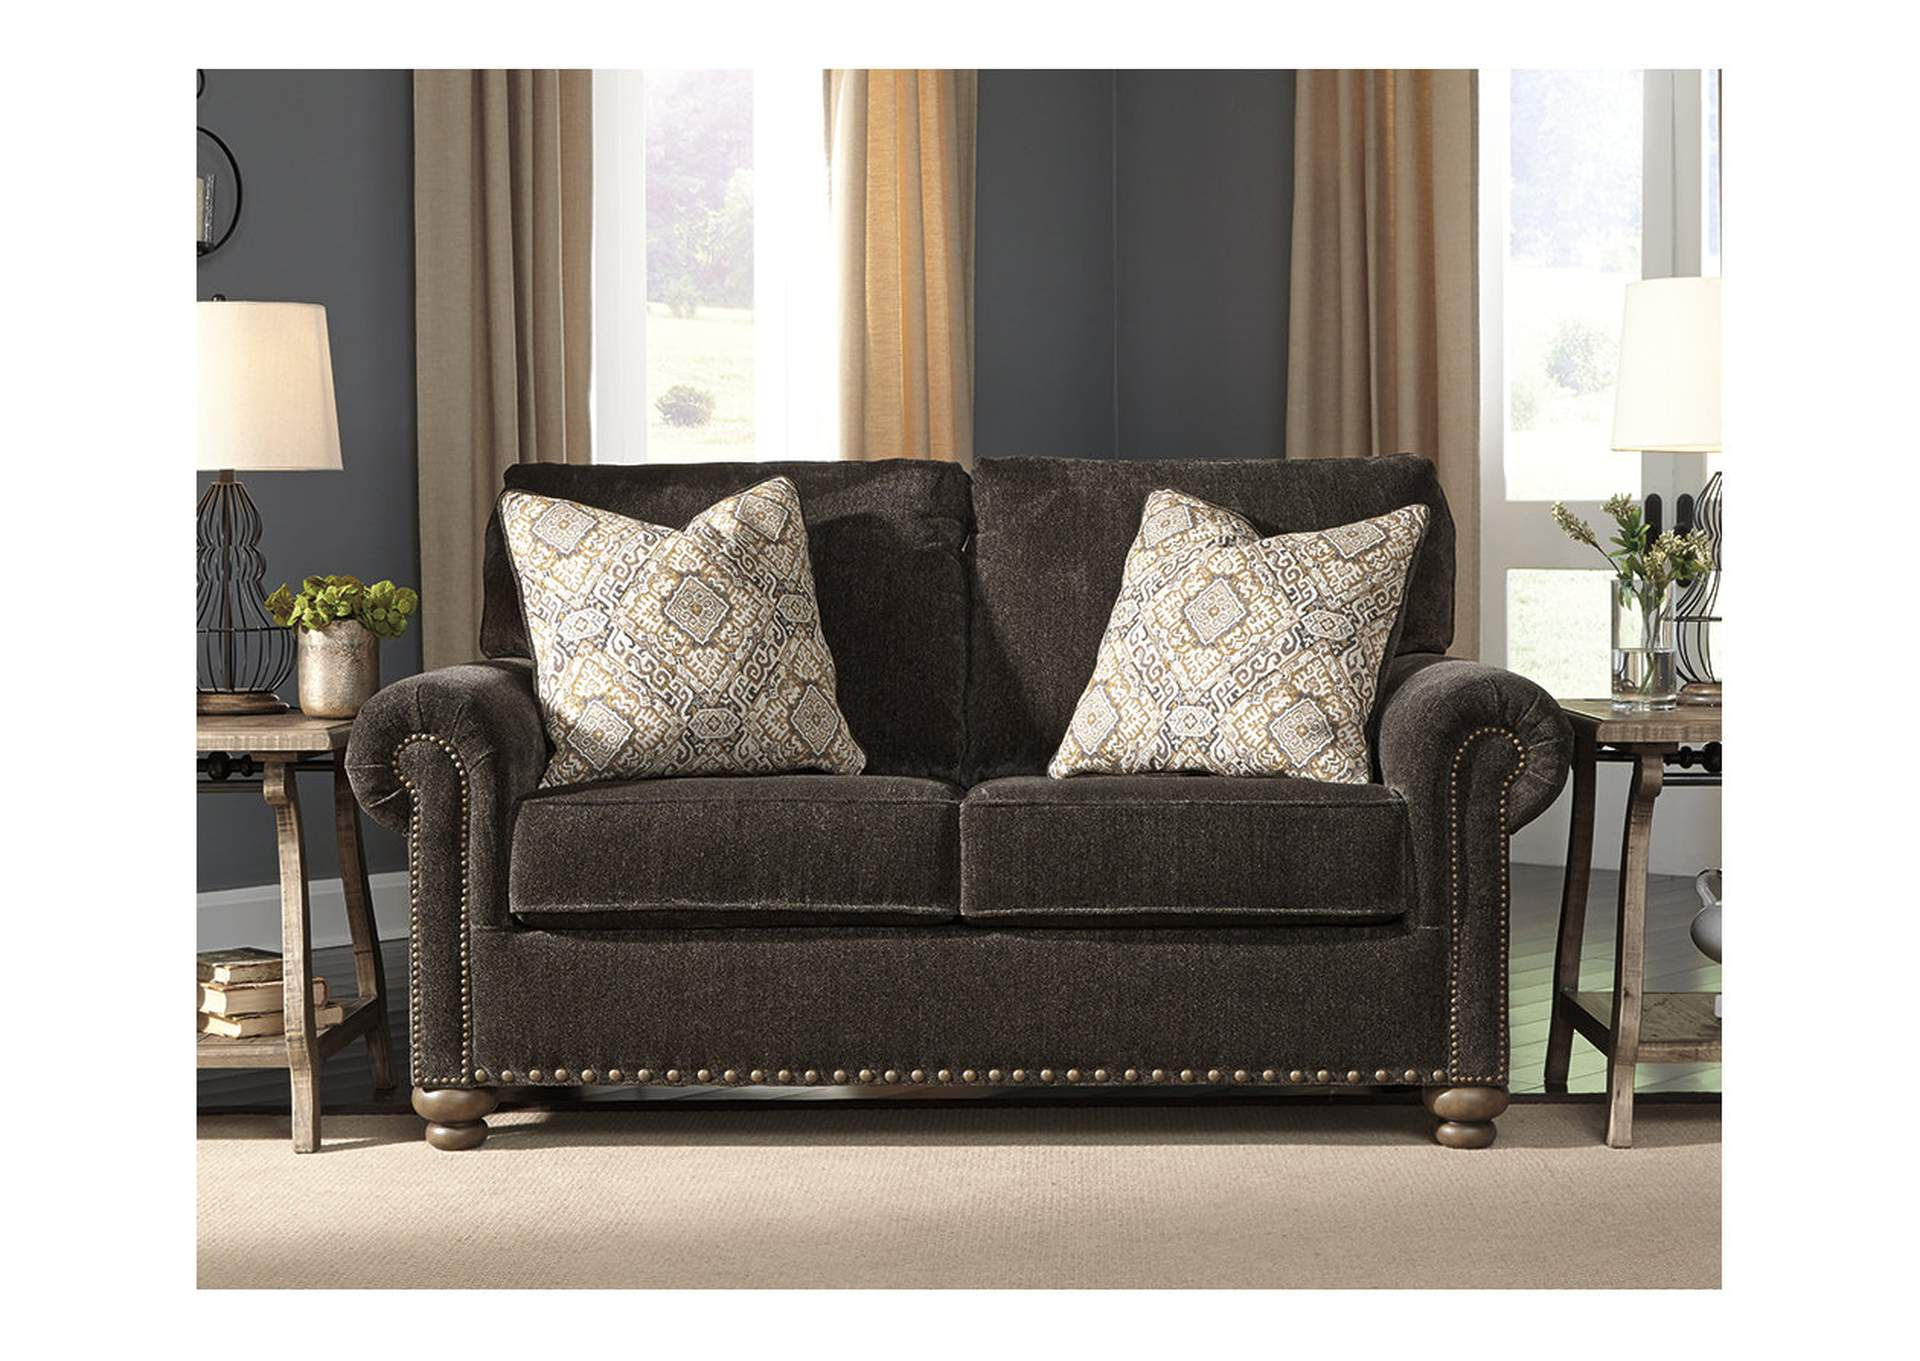 Stracelen Sable Loveseat,Signature Design By Ashley